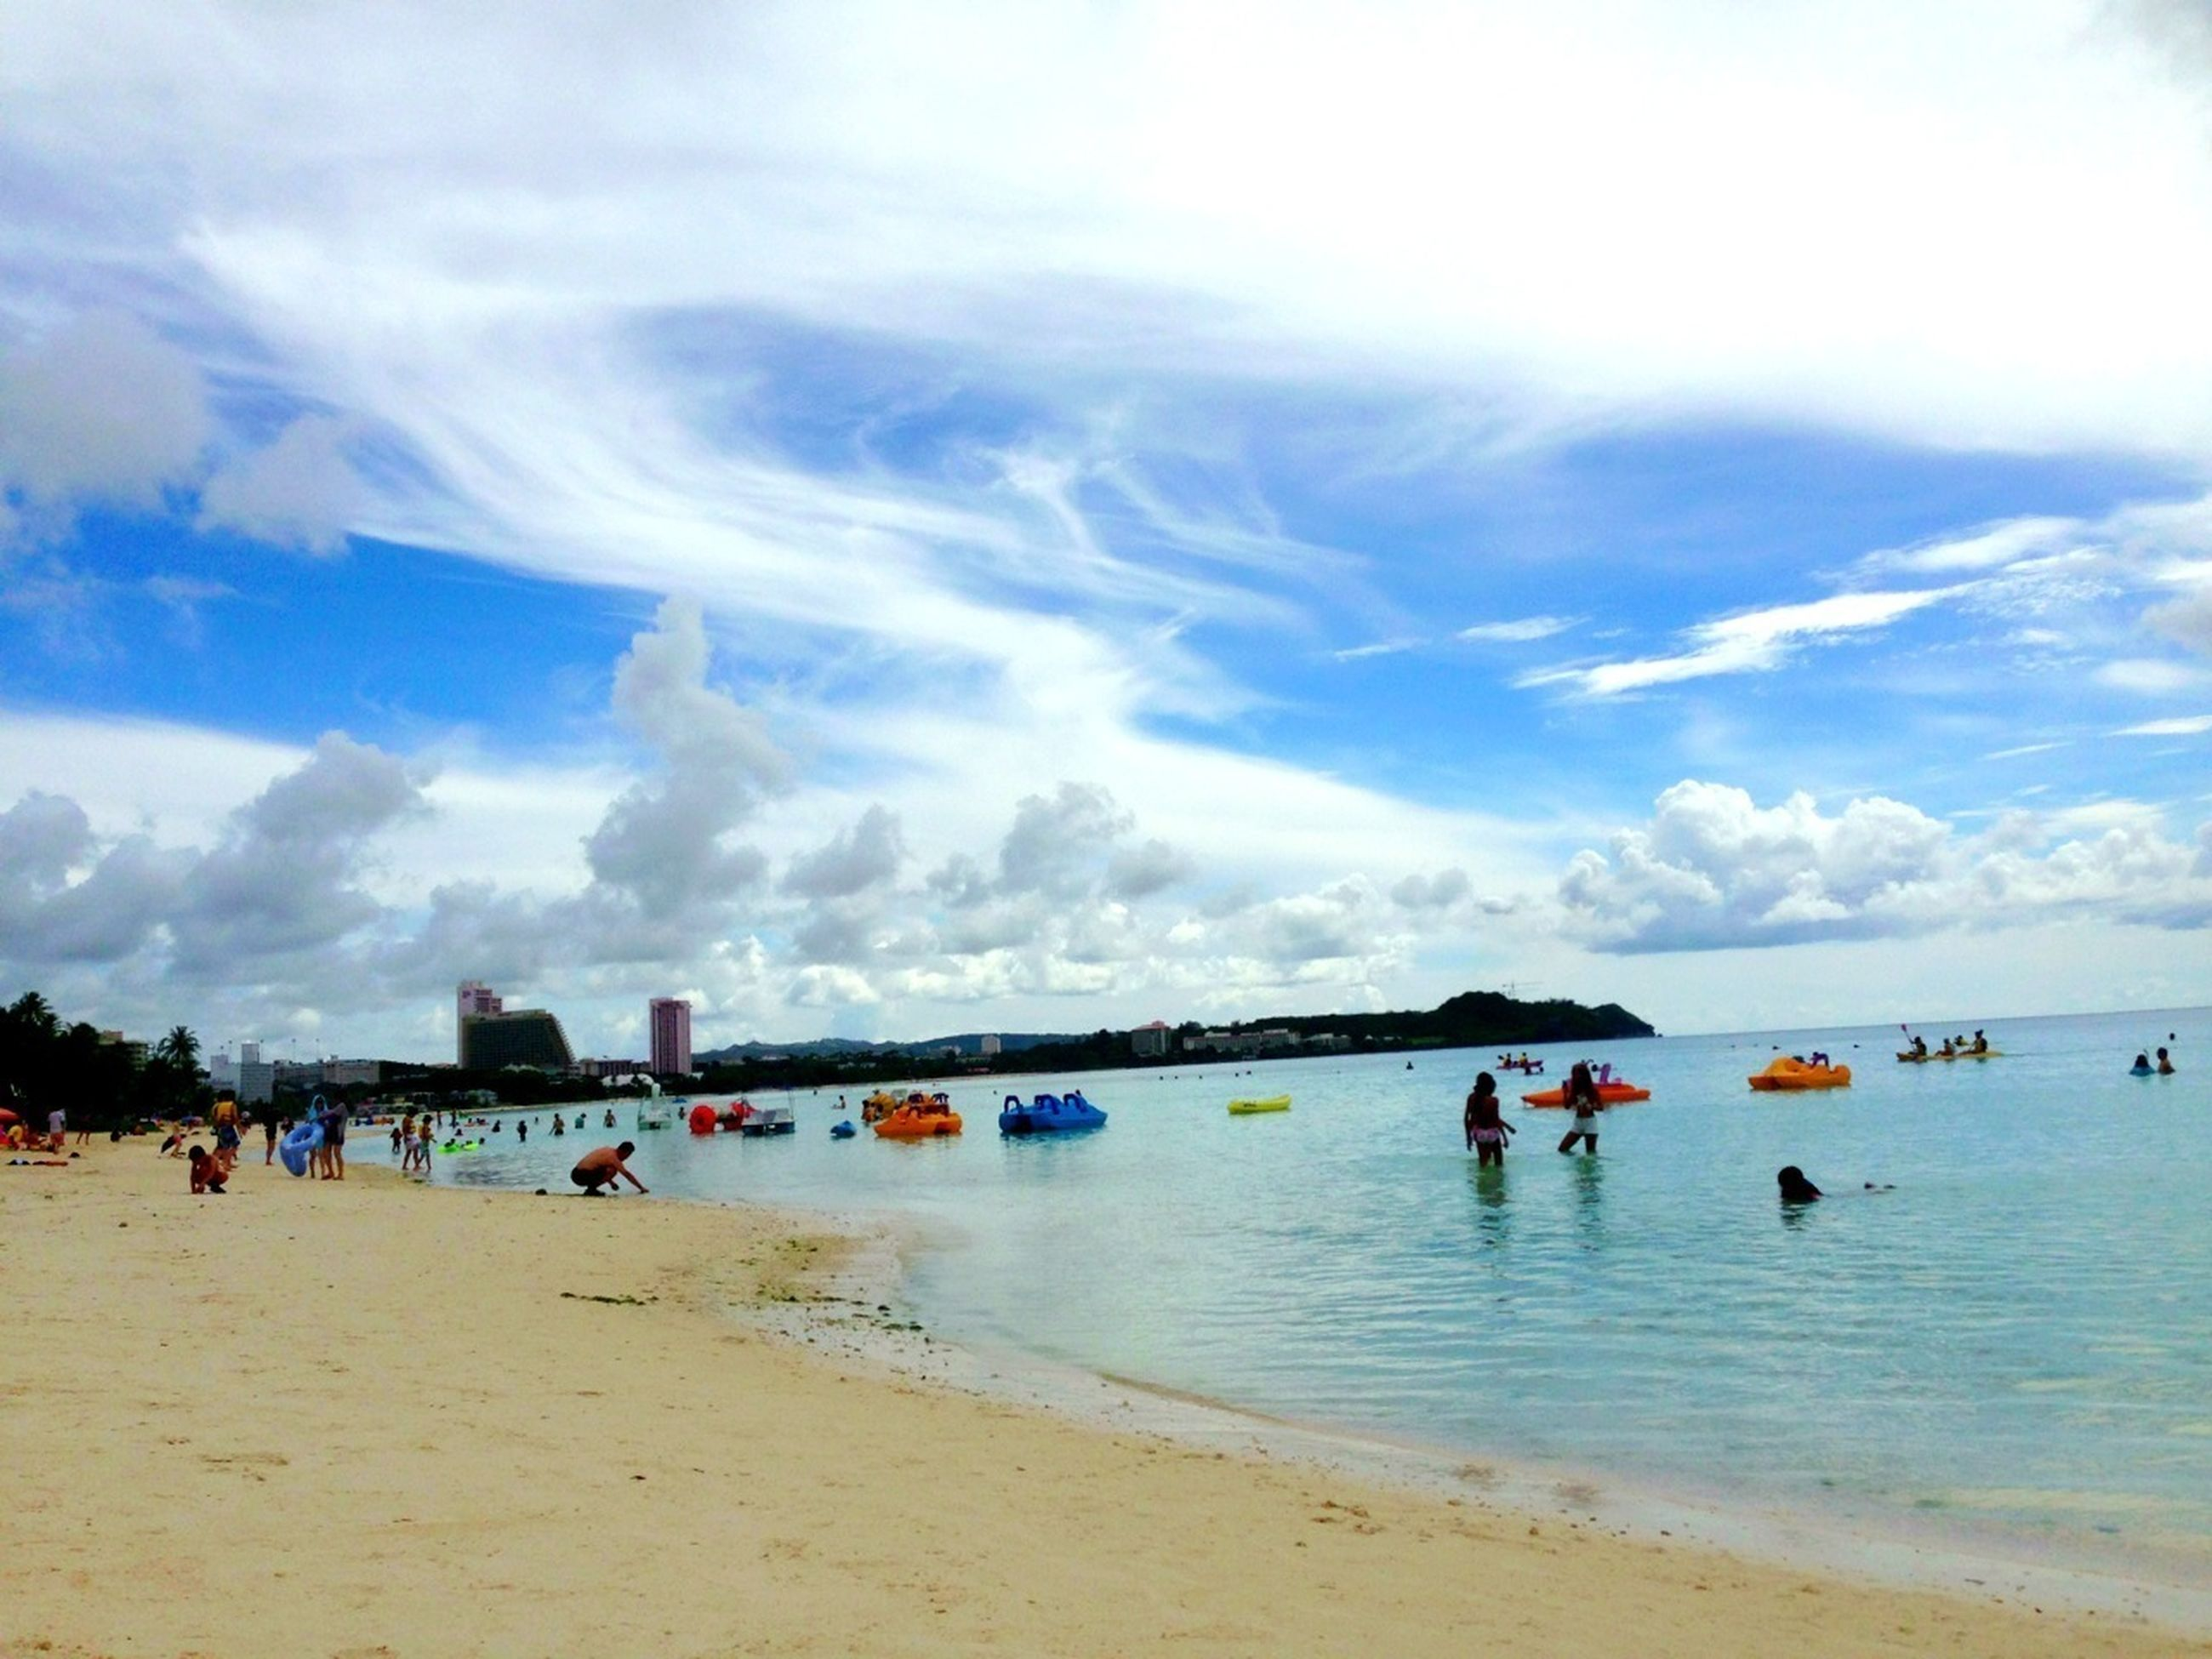 sea, water, beach, large group of people, sky, cloud - sky, shore, vacations, leisure activity, sand, lifestyles, scenics, mixed age range, horizon over water, beauty in nature, nature, cloudy, men, tourist